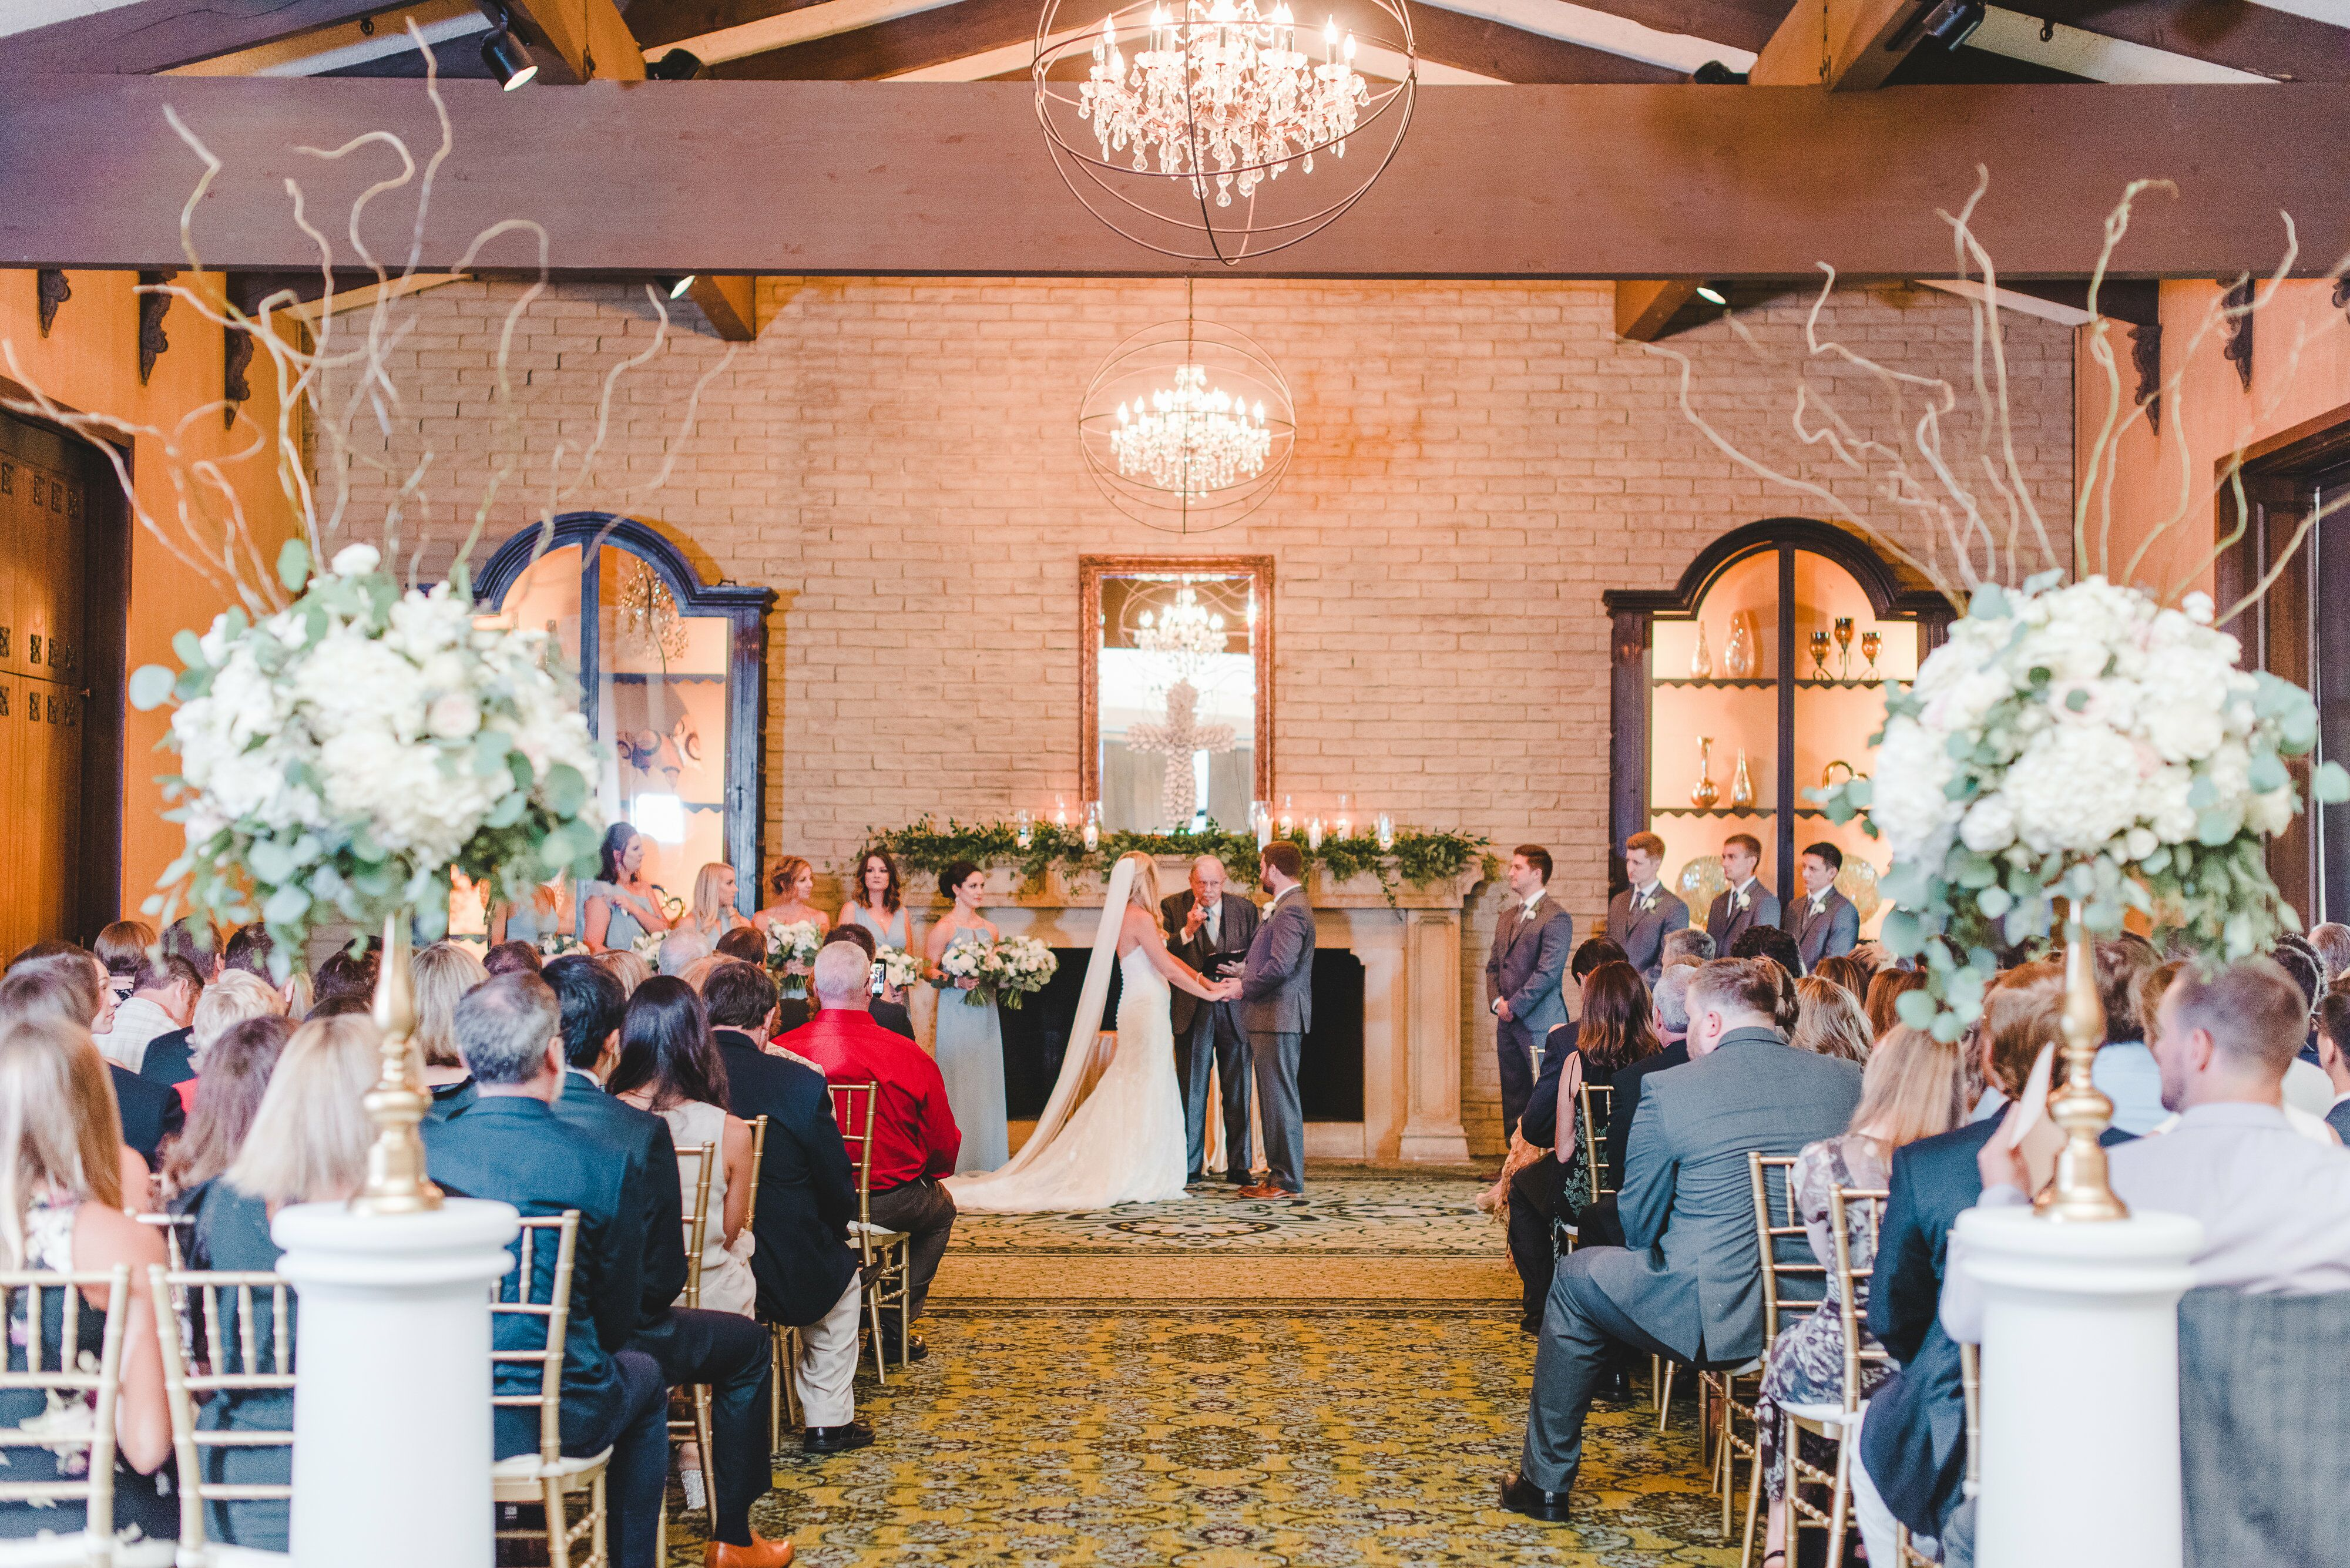 Wedding Reception Venues in Irving TX The Knot